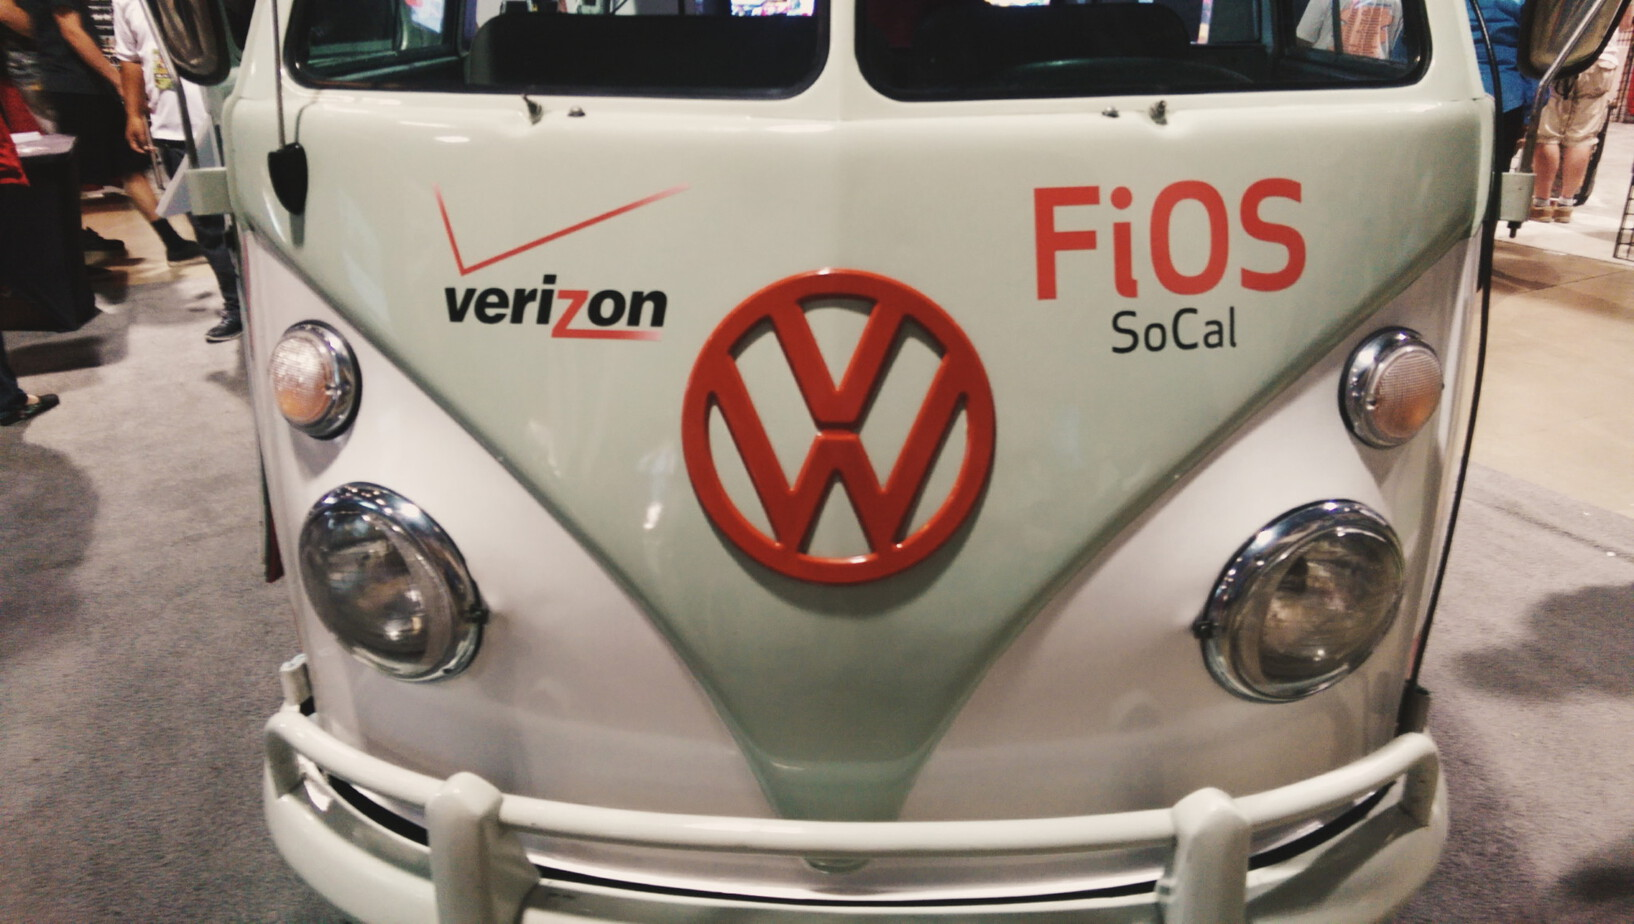 Verizon FiOS VW at Long Beach Grand Prix